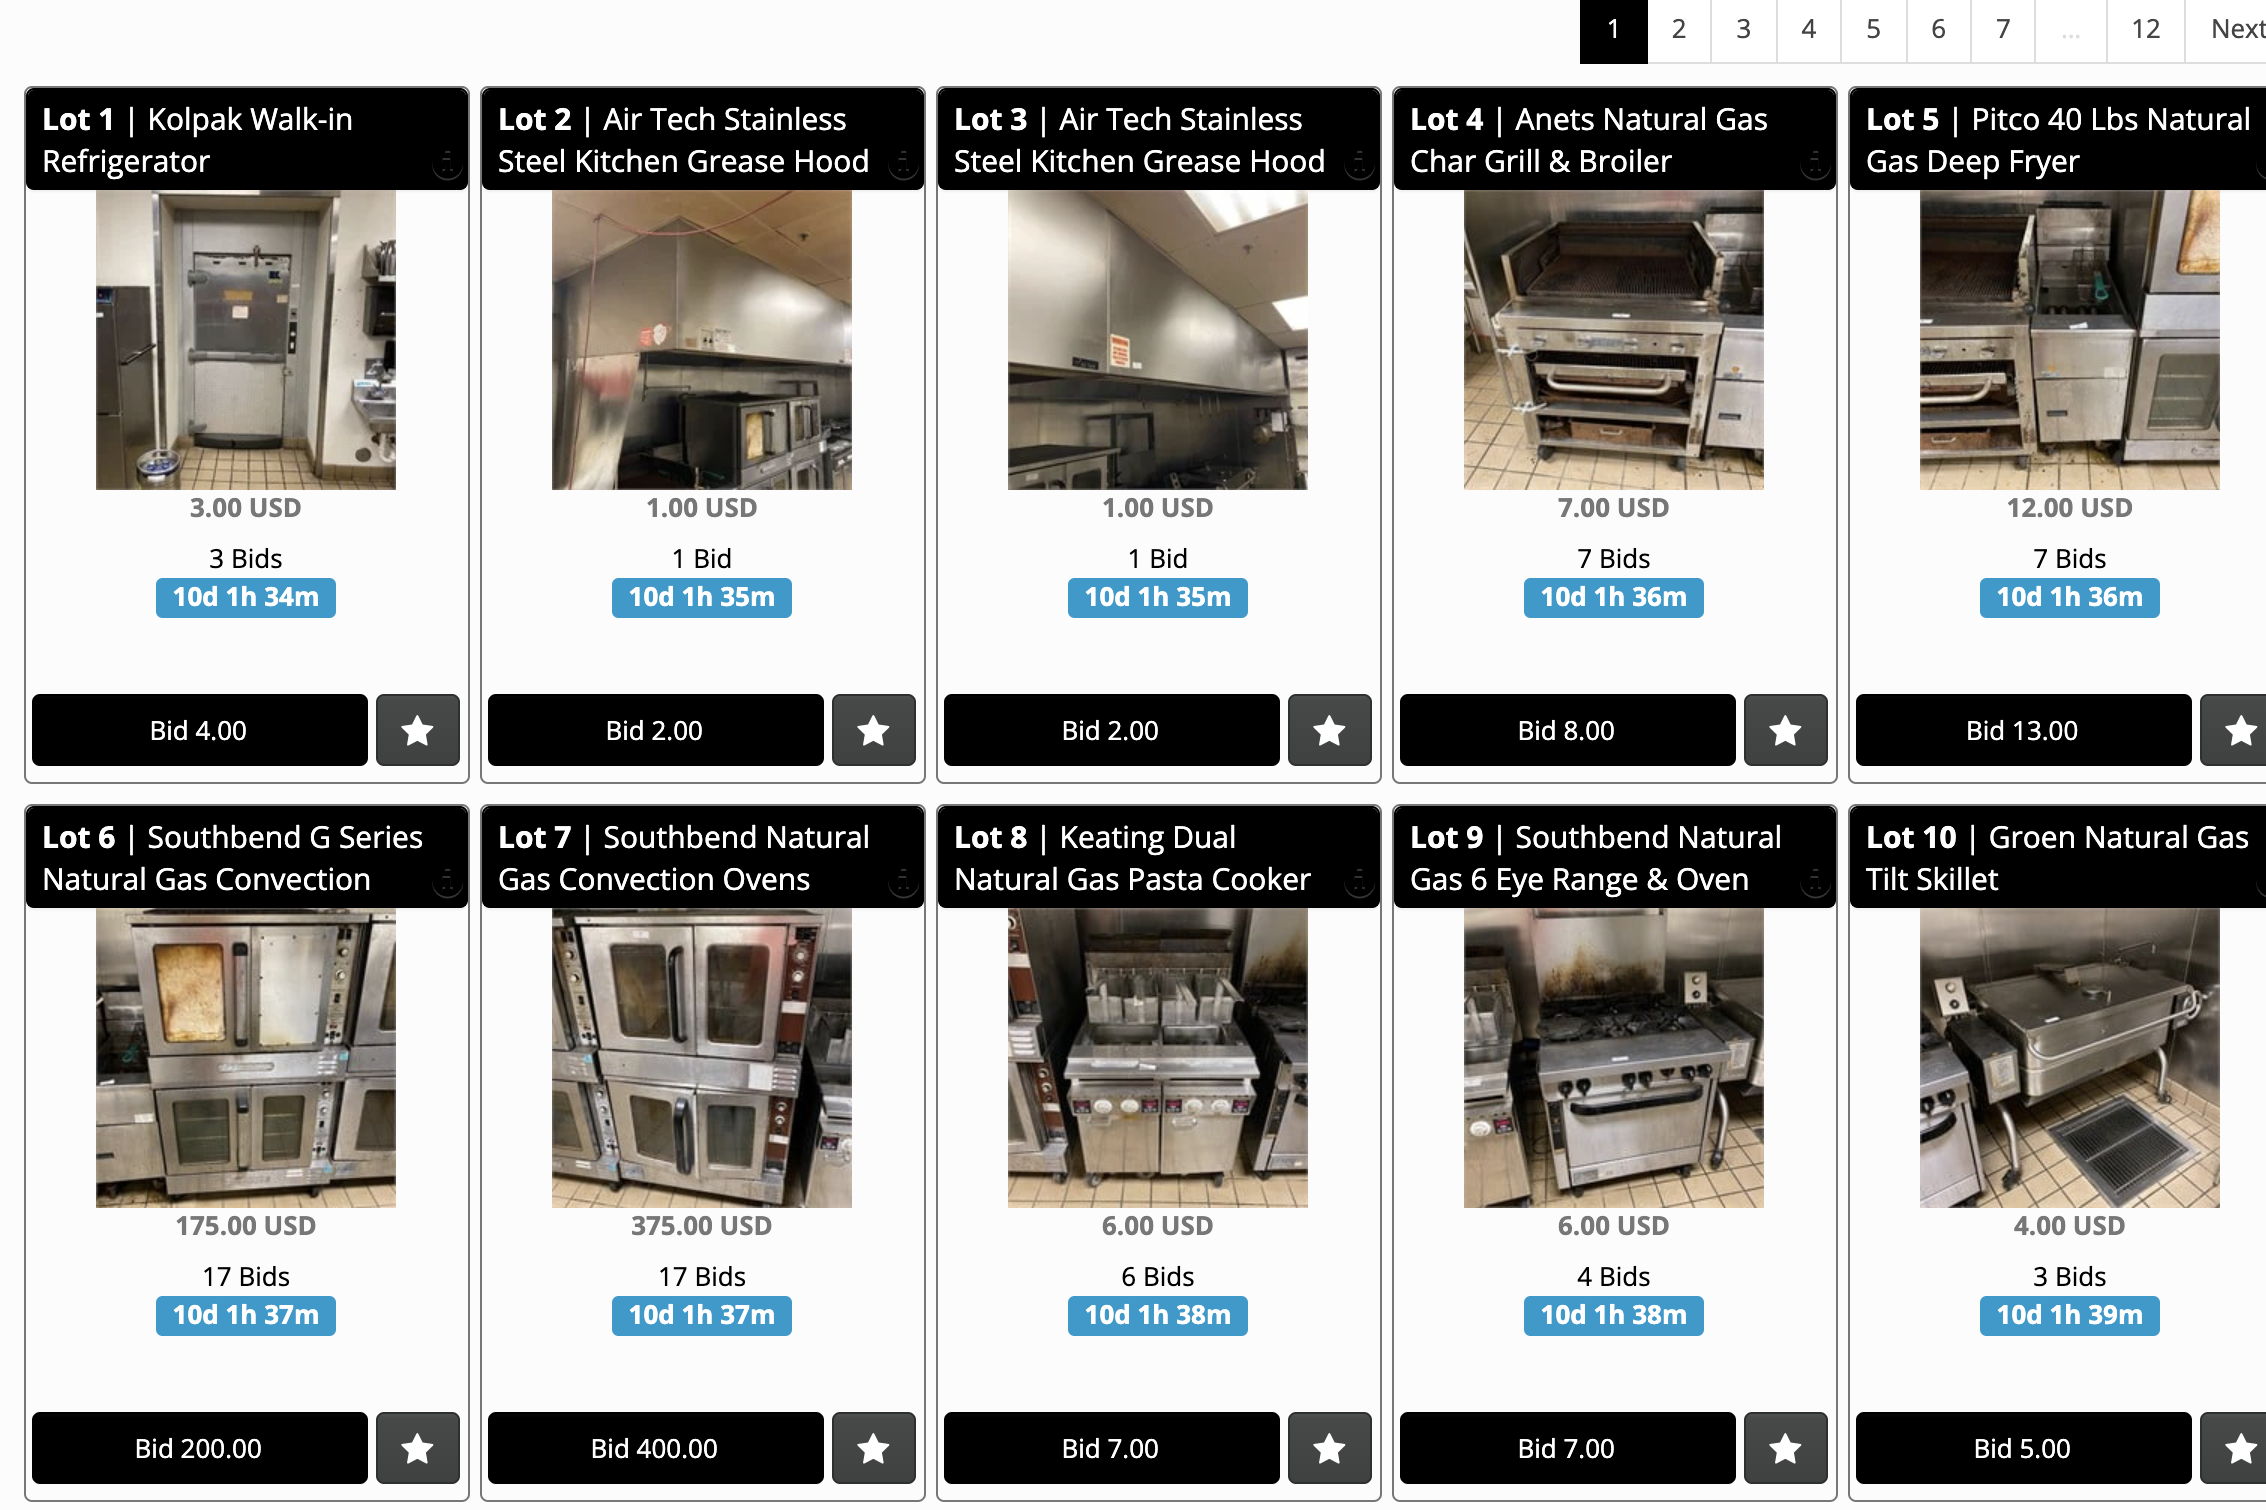 A website shows refrigerators, sinks, stoves up for auction